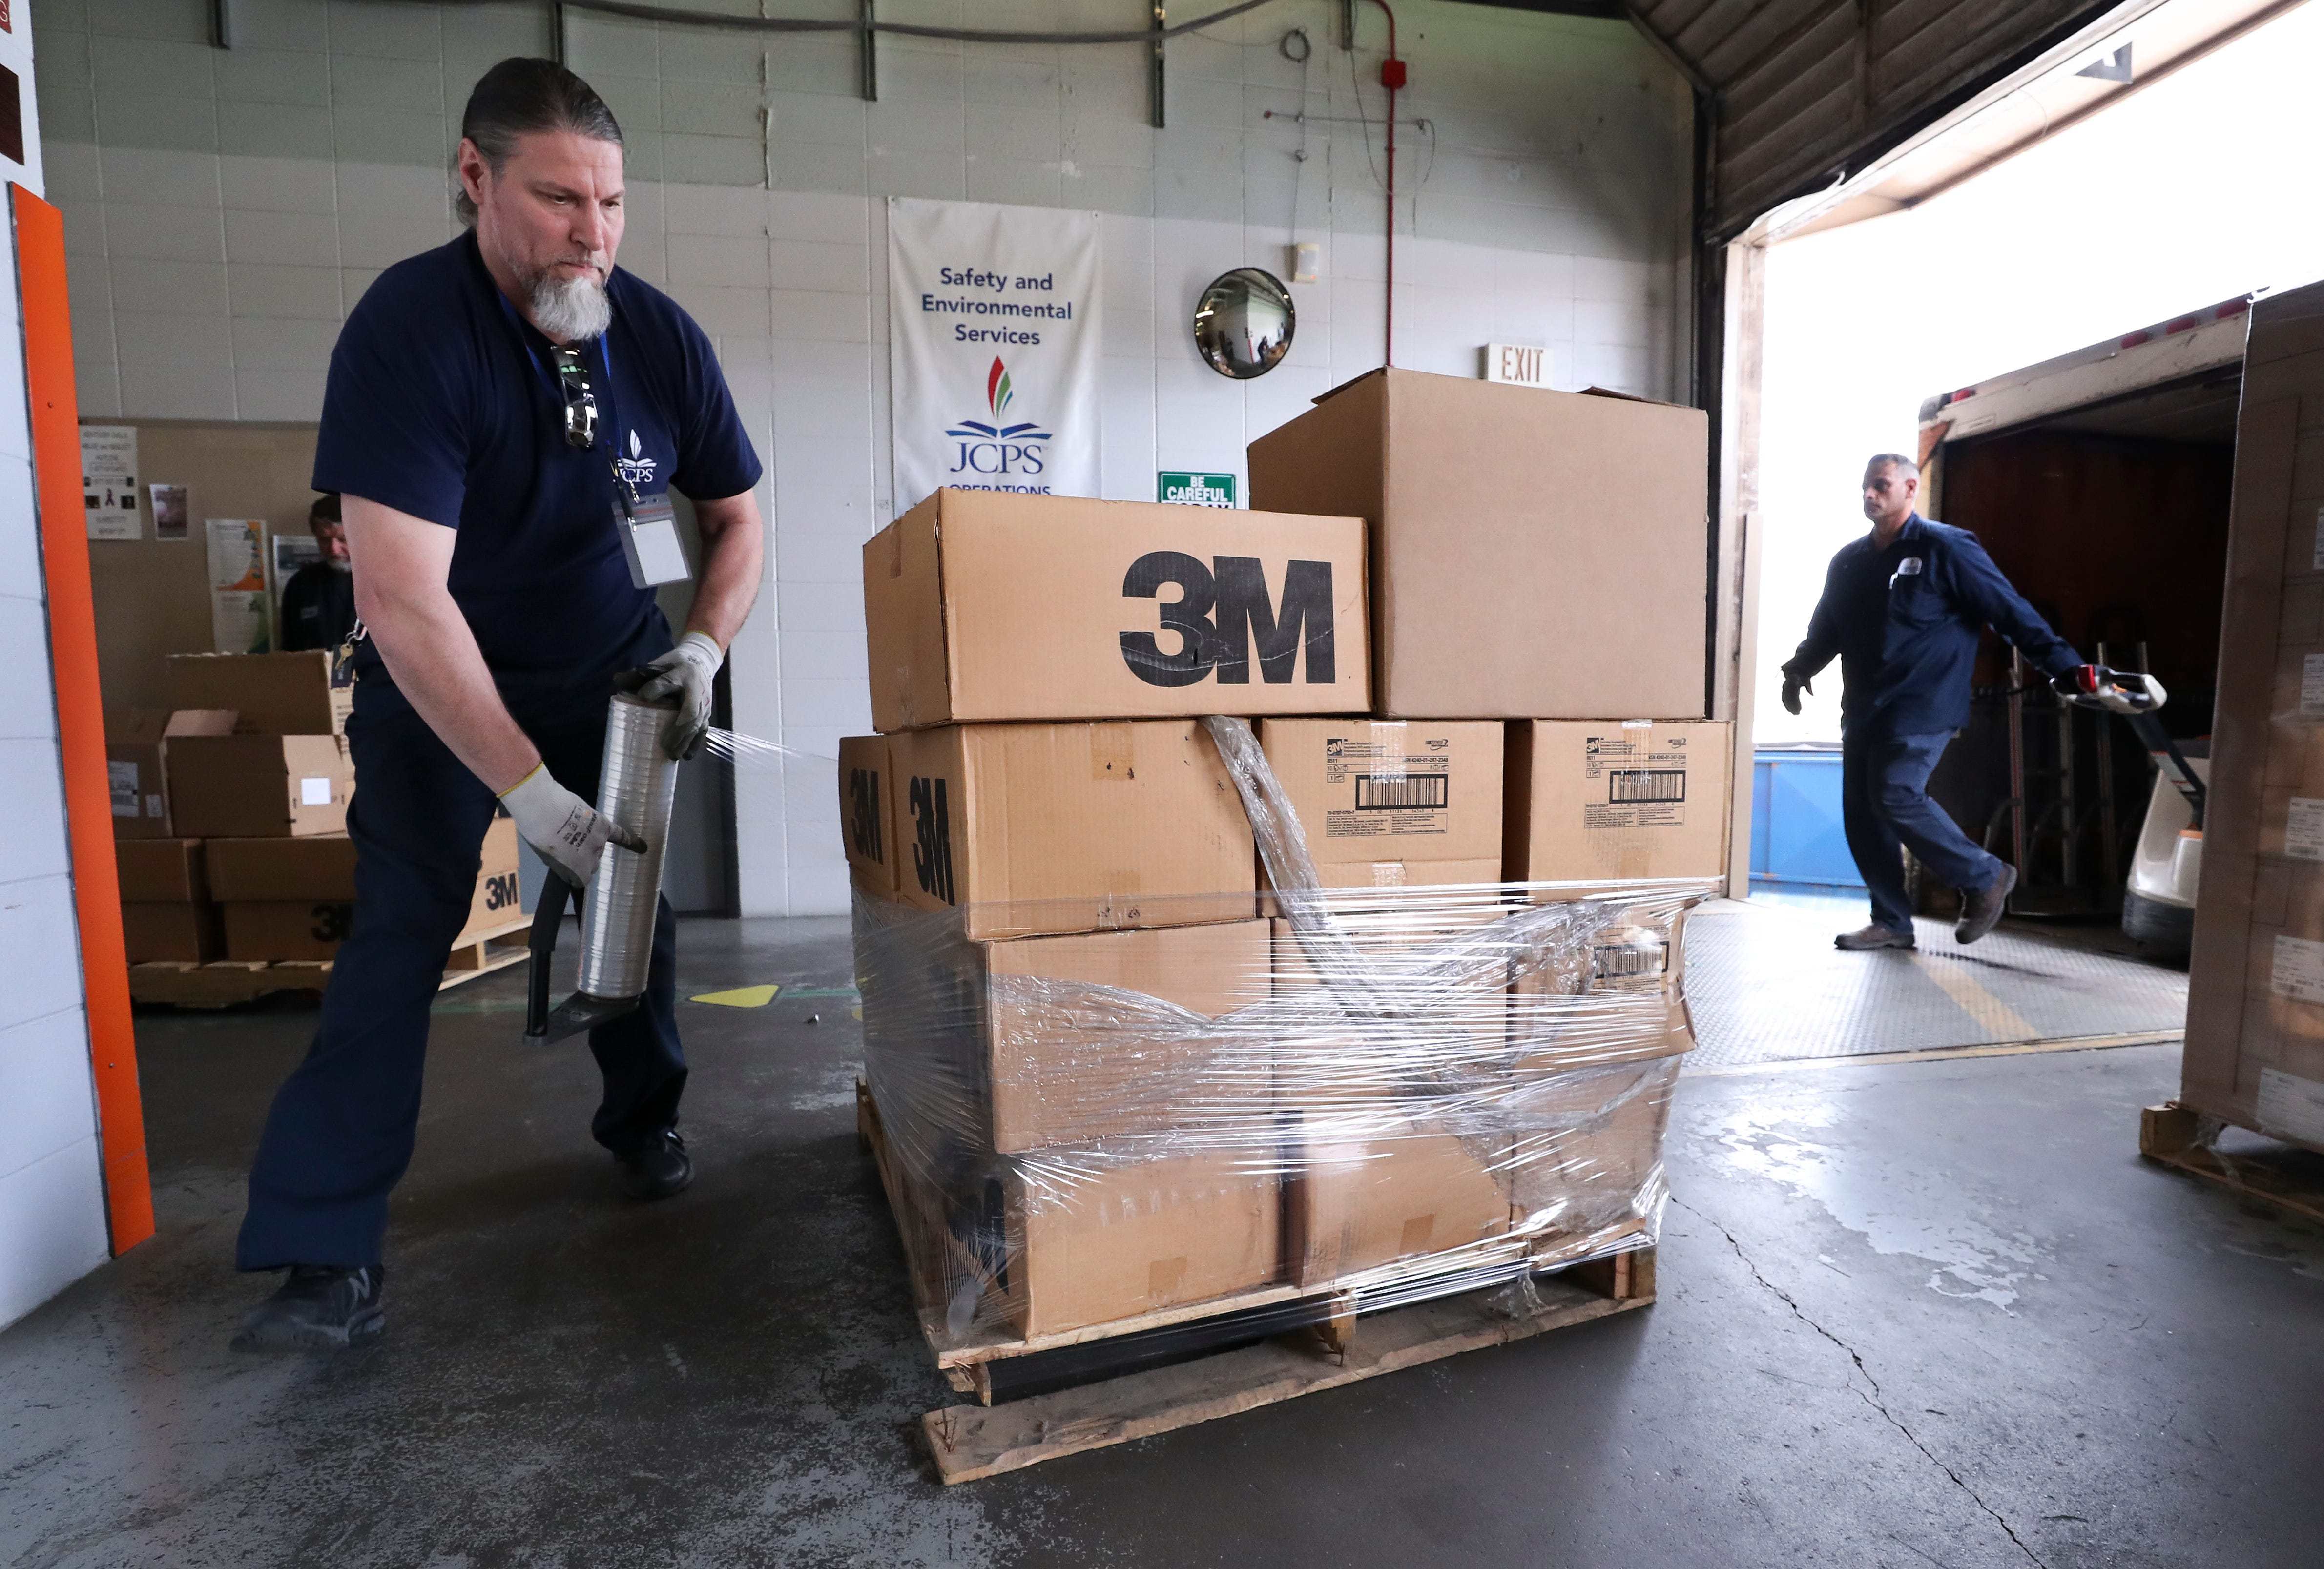 Layman Leasor, a JCPS employee, wraps boxes of personal protective equipment in plastic on a shipping dock at the Young Building on Crittenden Drive in Louisville, Ky. on Mar. 26, 2020.  The school system is donating 40,000 items, including masks and gloves to the Louisville Metro Public Health Department to assist in their efforts to control the spread of the coronavirus outbreak.